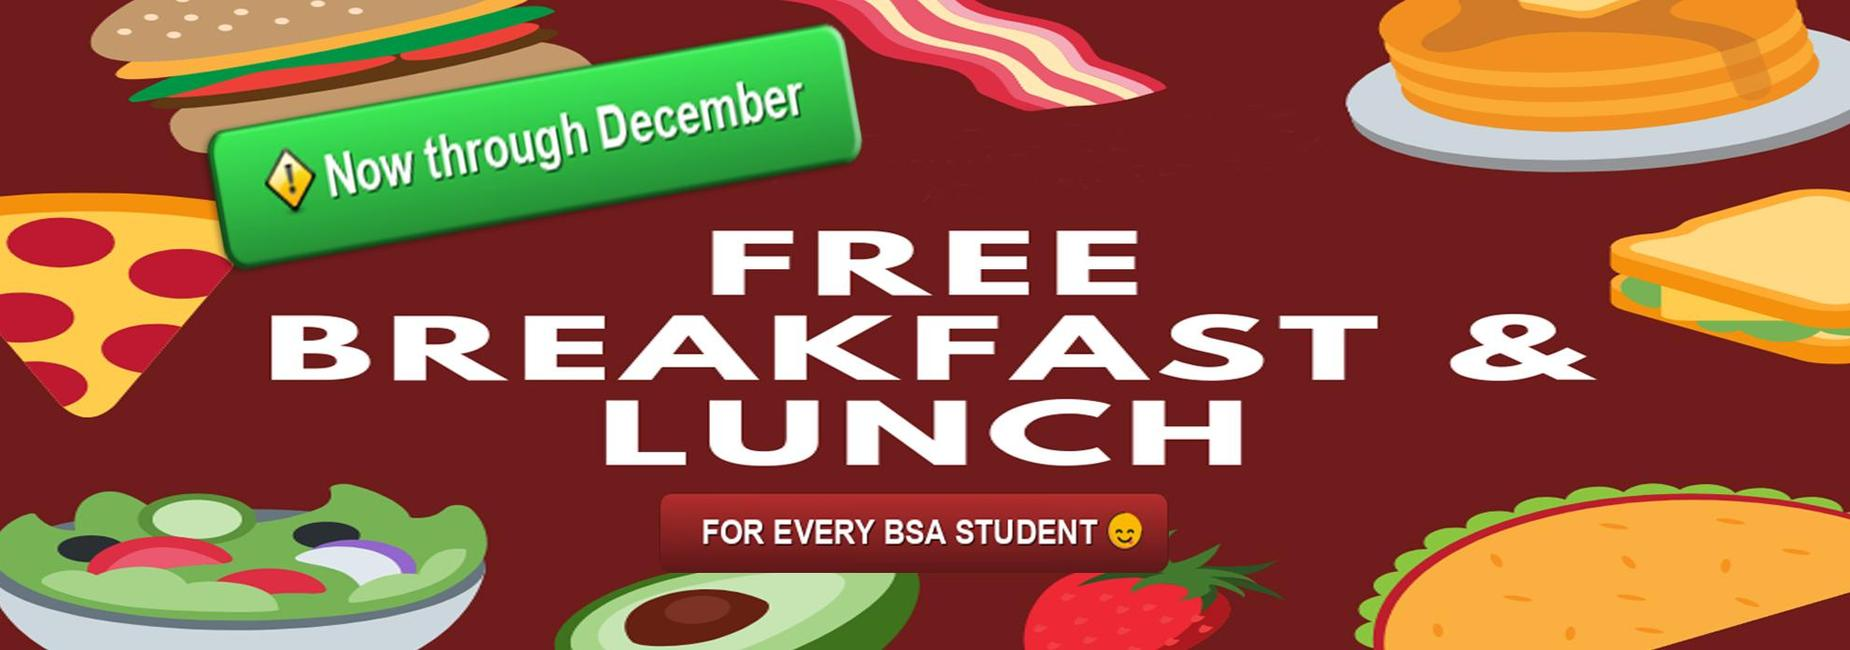 Now through December Free Breakfast and Lunch for all BSA Students